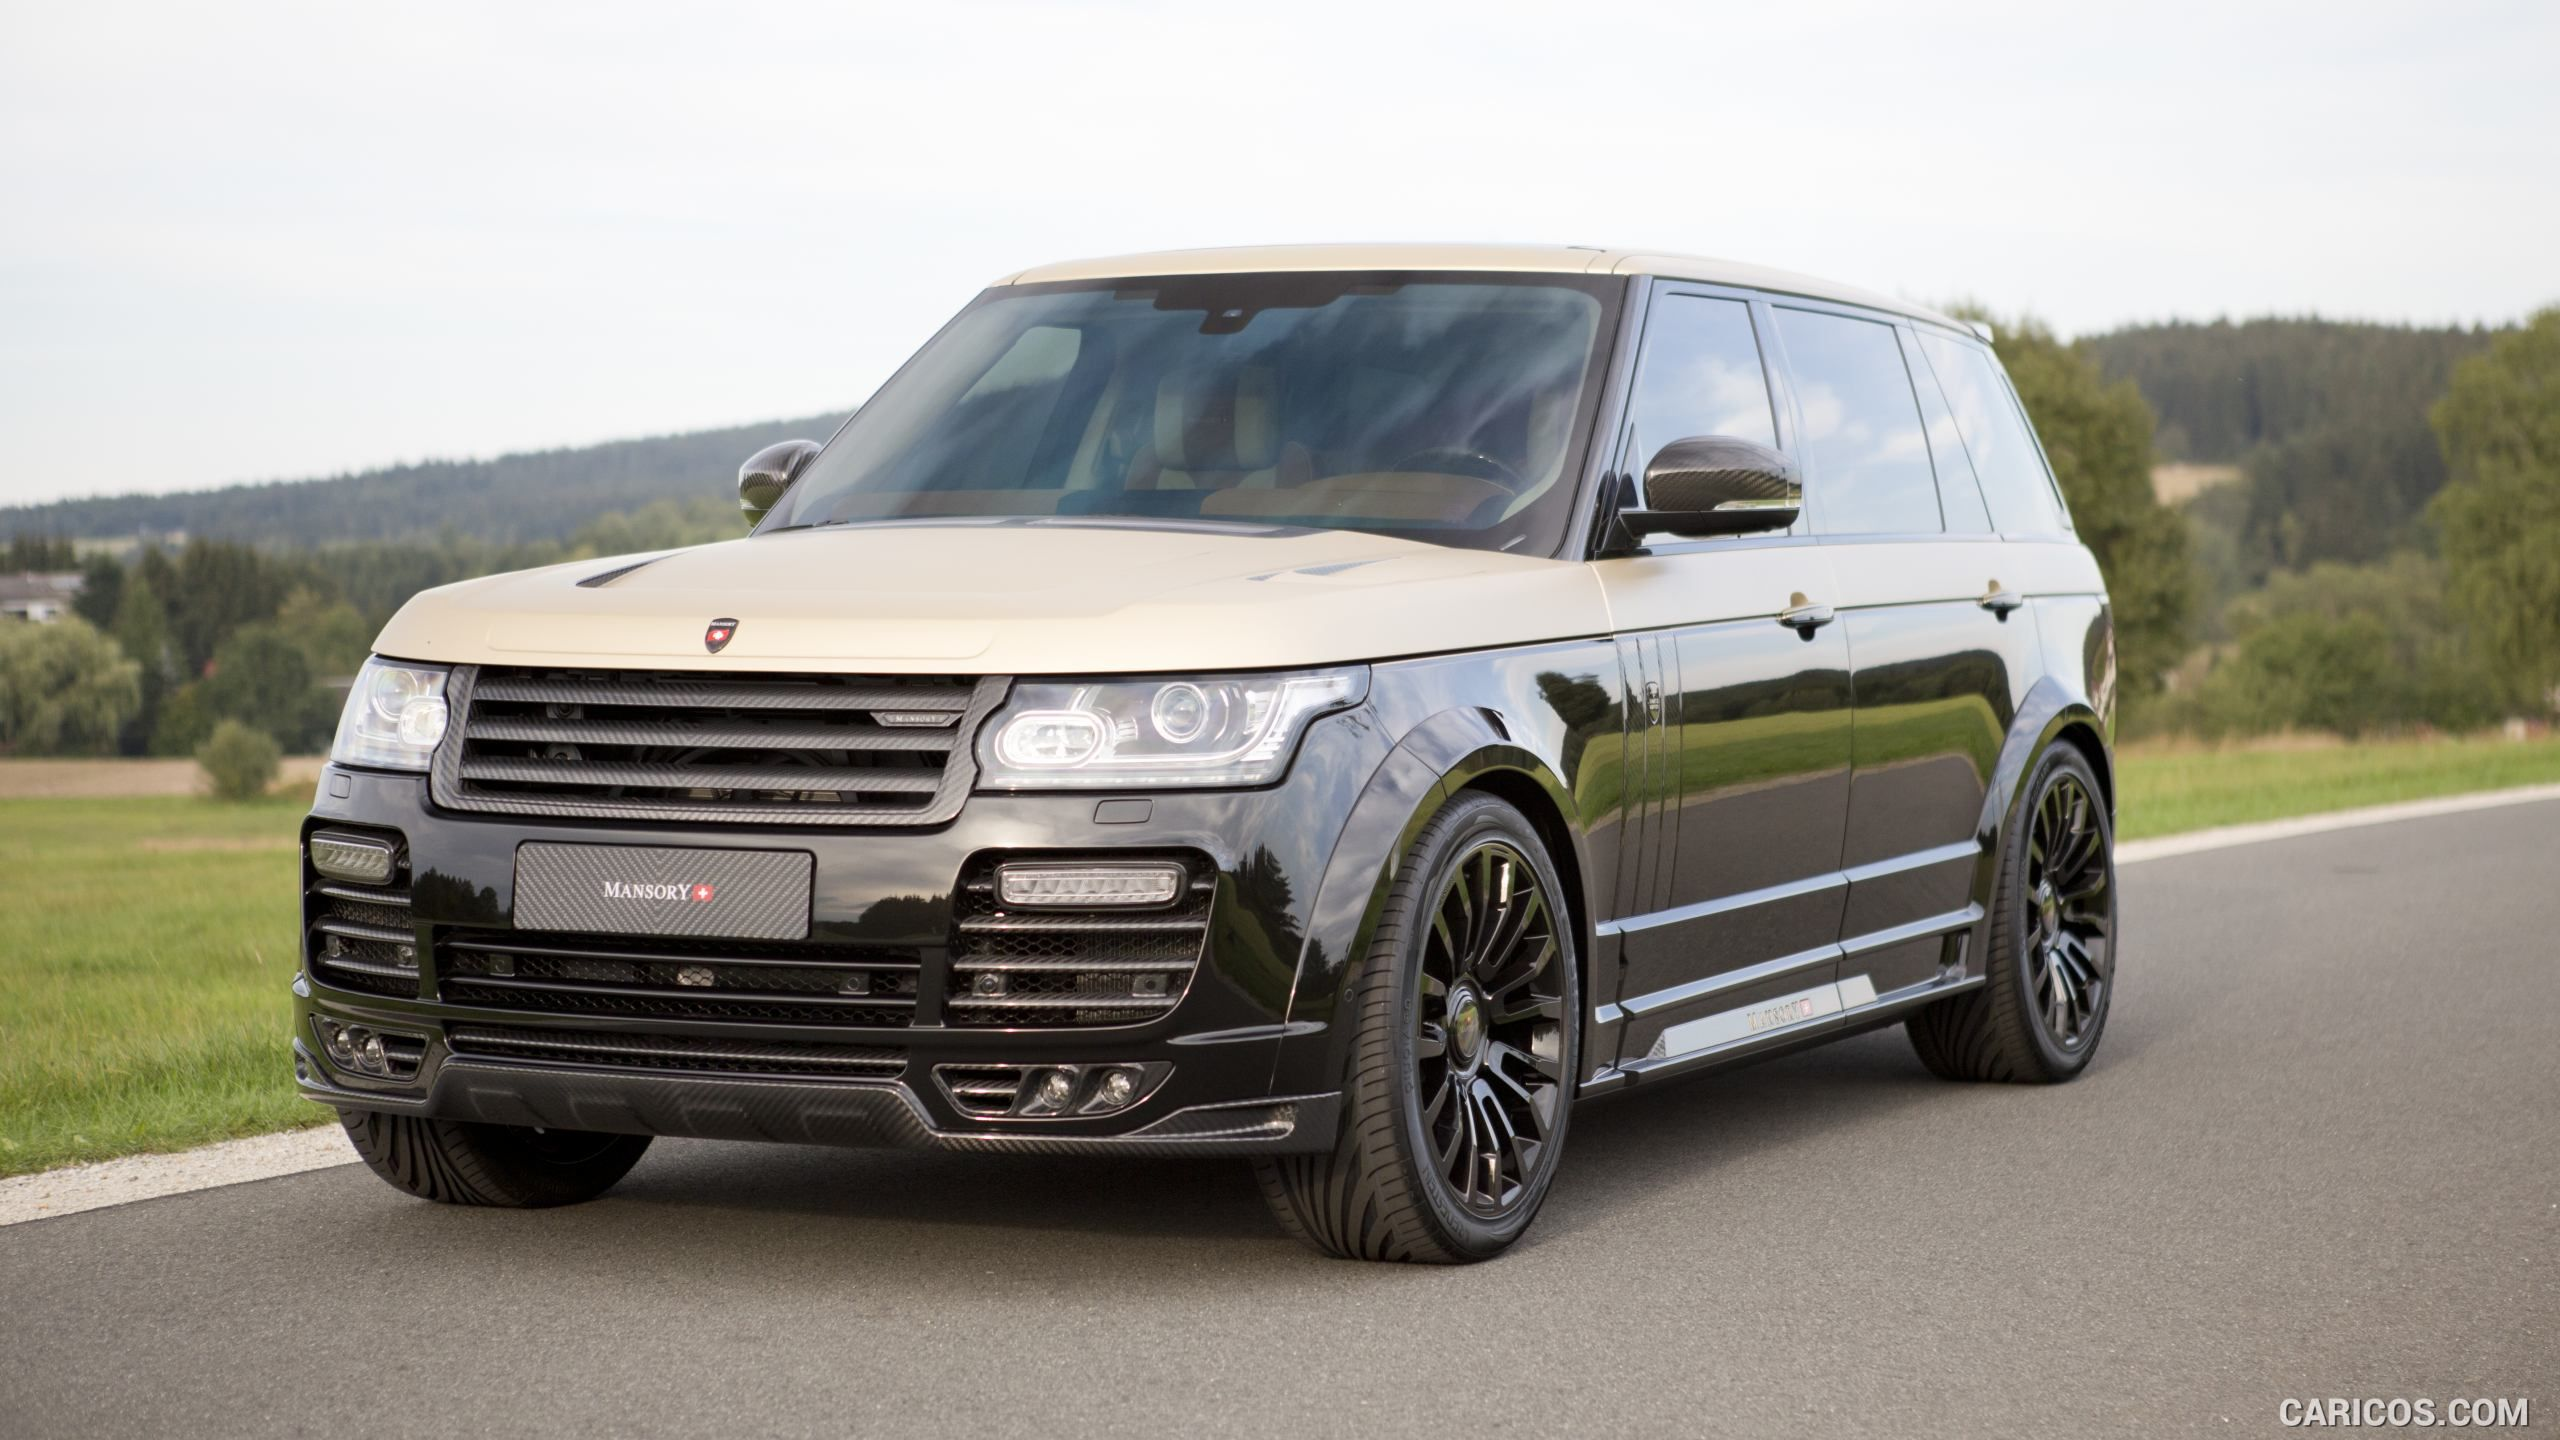 hight resolution of caricos mansory range rover autobiography extended 2016 link 12 fotos